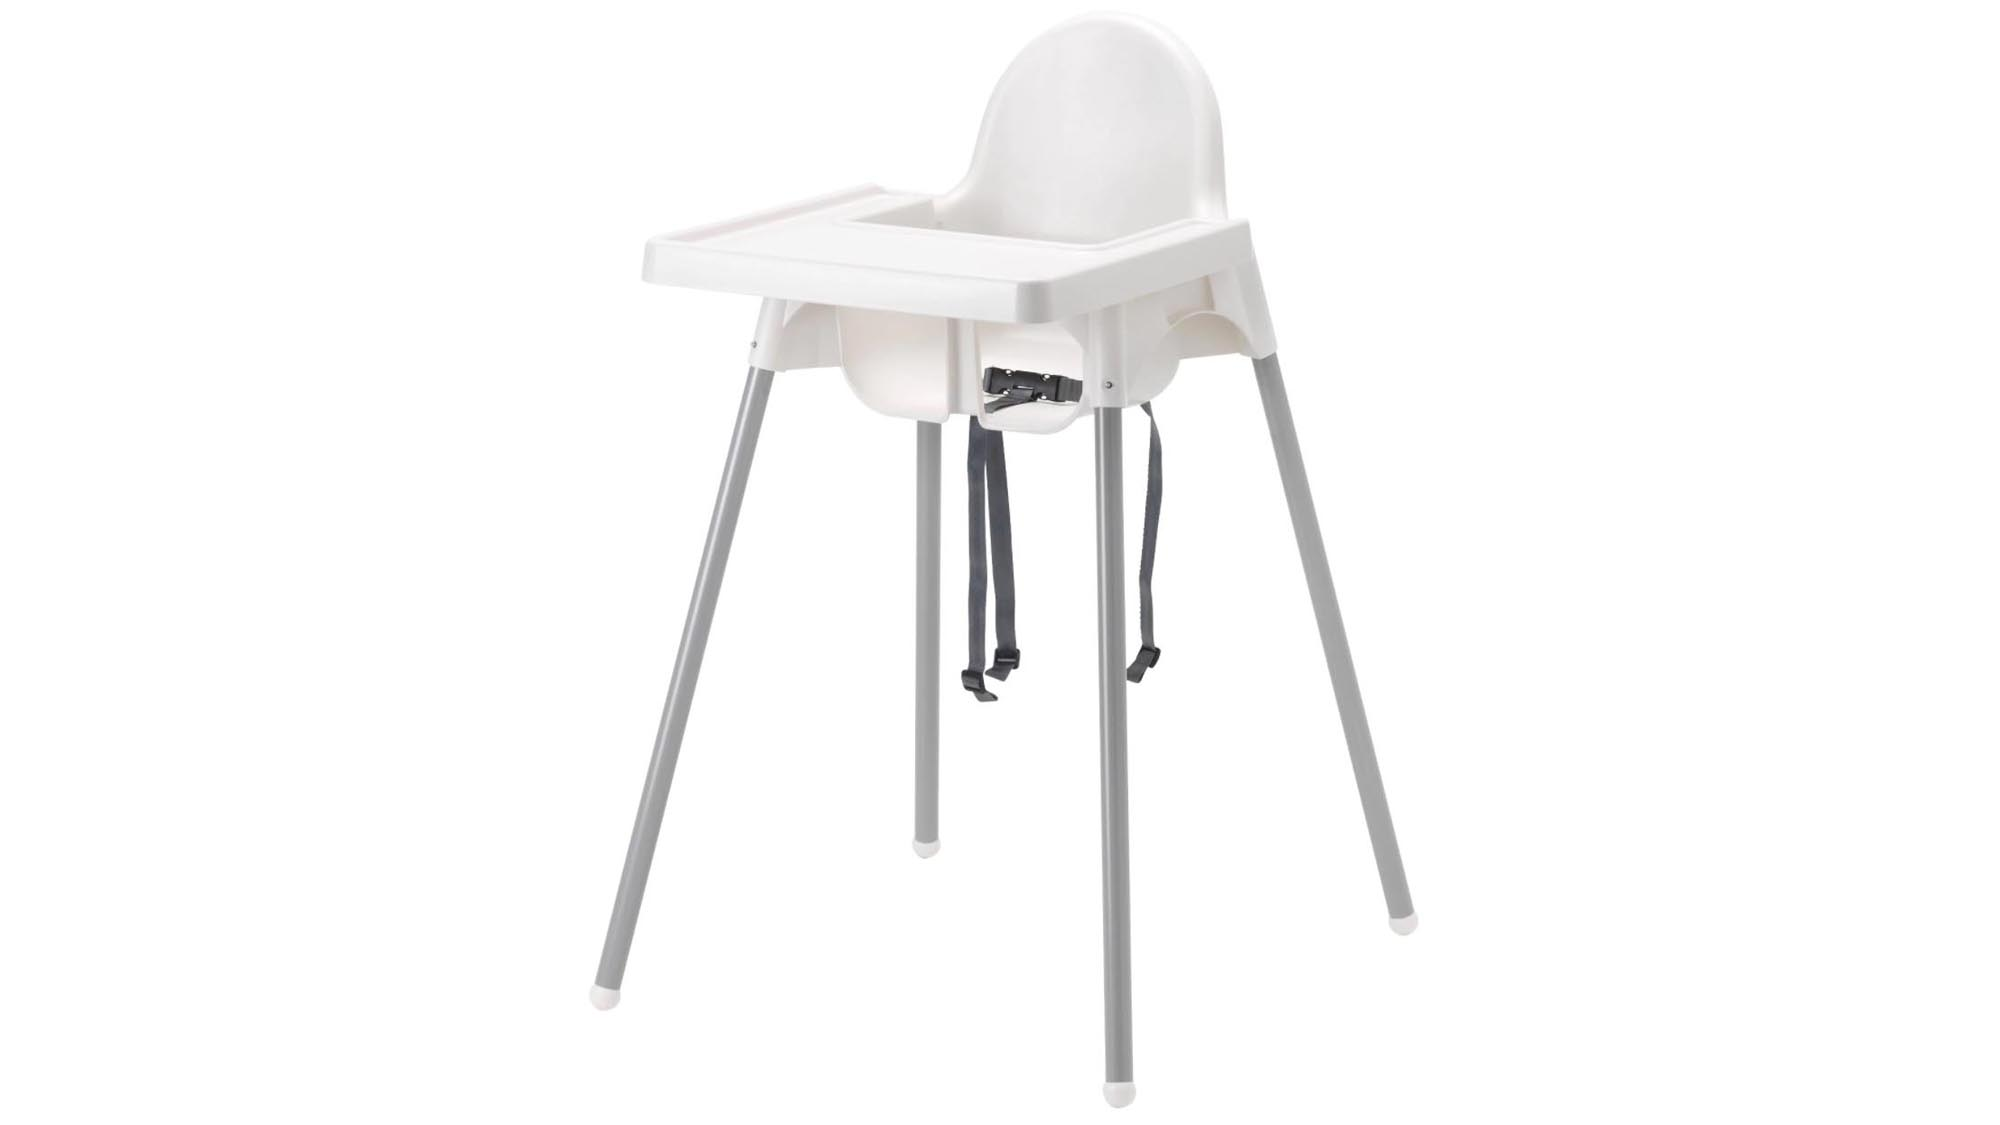 ... Antilop is probably the most-seen high chair in dining rooms and restaurants Europe-wide. Why? Itu0027s cheap functional comfortable and easy to clean.  sc 1 st  Expert Reviews & Best high chairs: The best high chairs from £20 | Expert Reviews